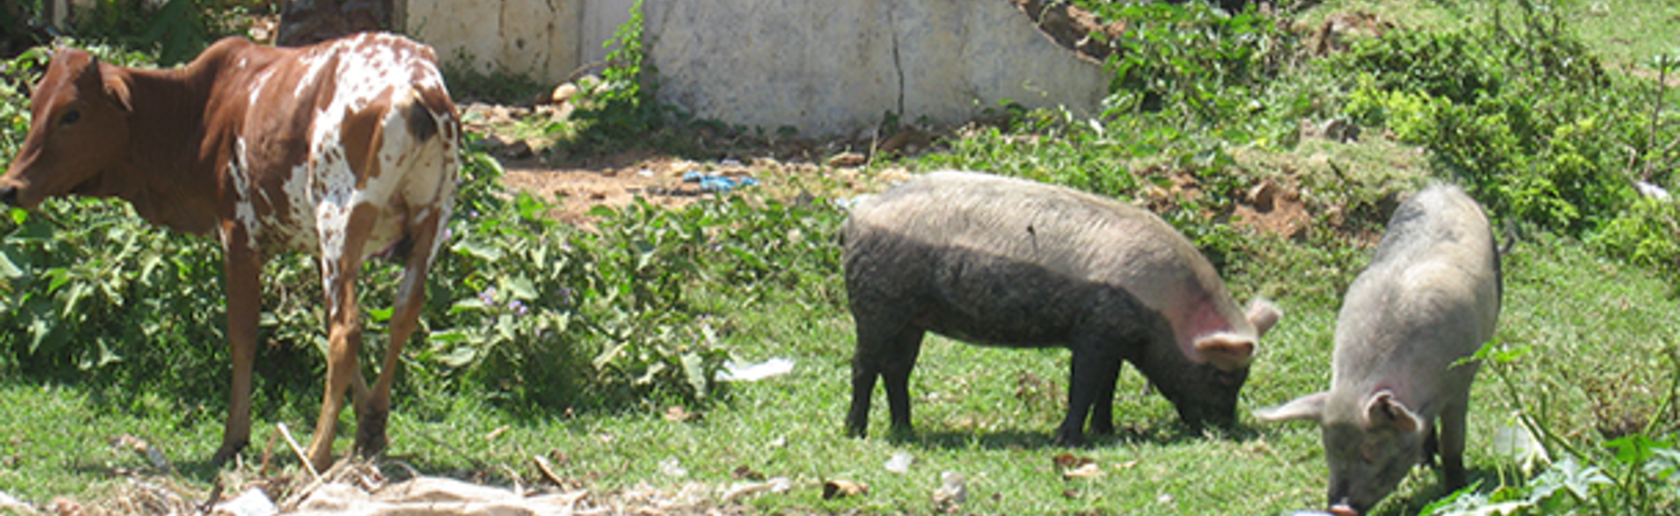 Free roaming pigs and a cow, in front of a crumbling building